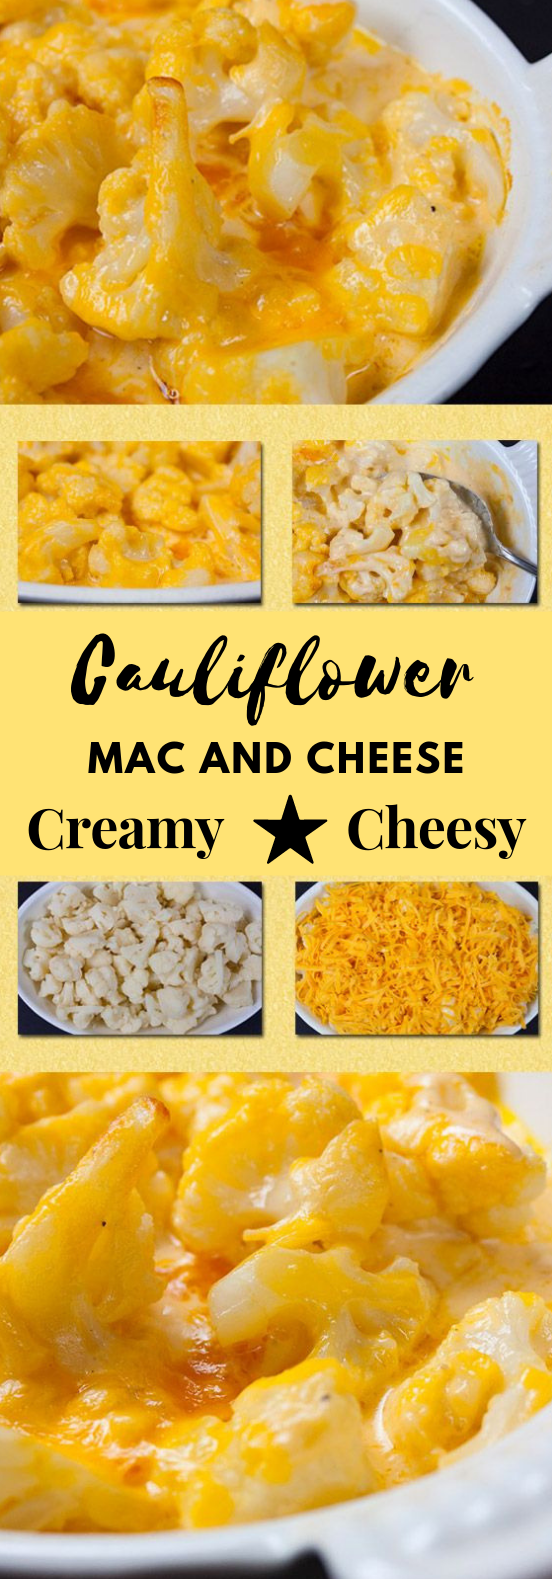 Cauliflower Mac and Cheese #keto #cauliflower